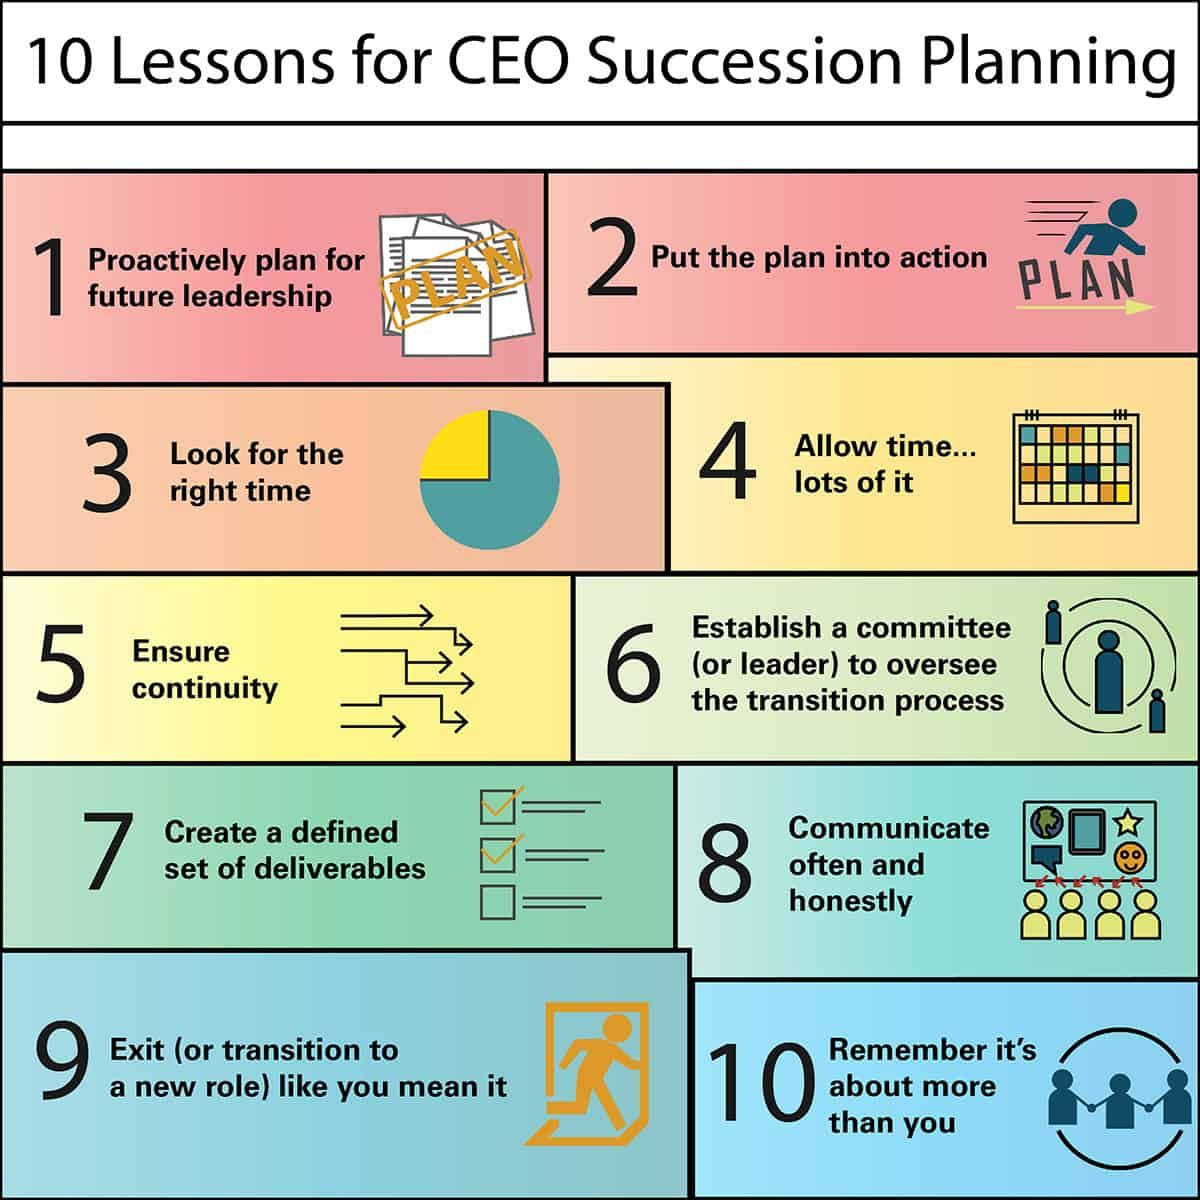 Graceful Exit Succession Planning for HighPerforming